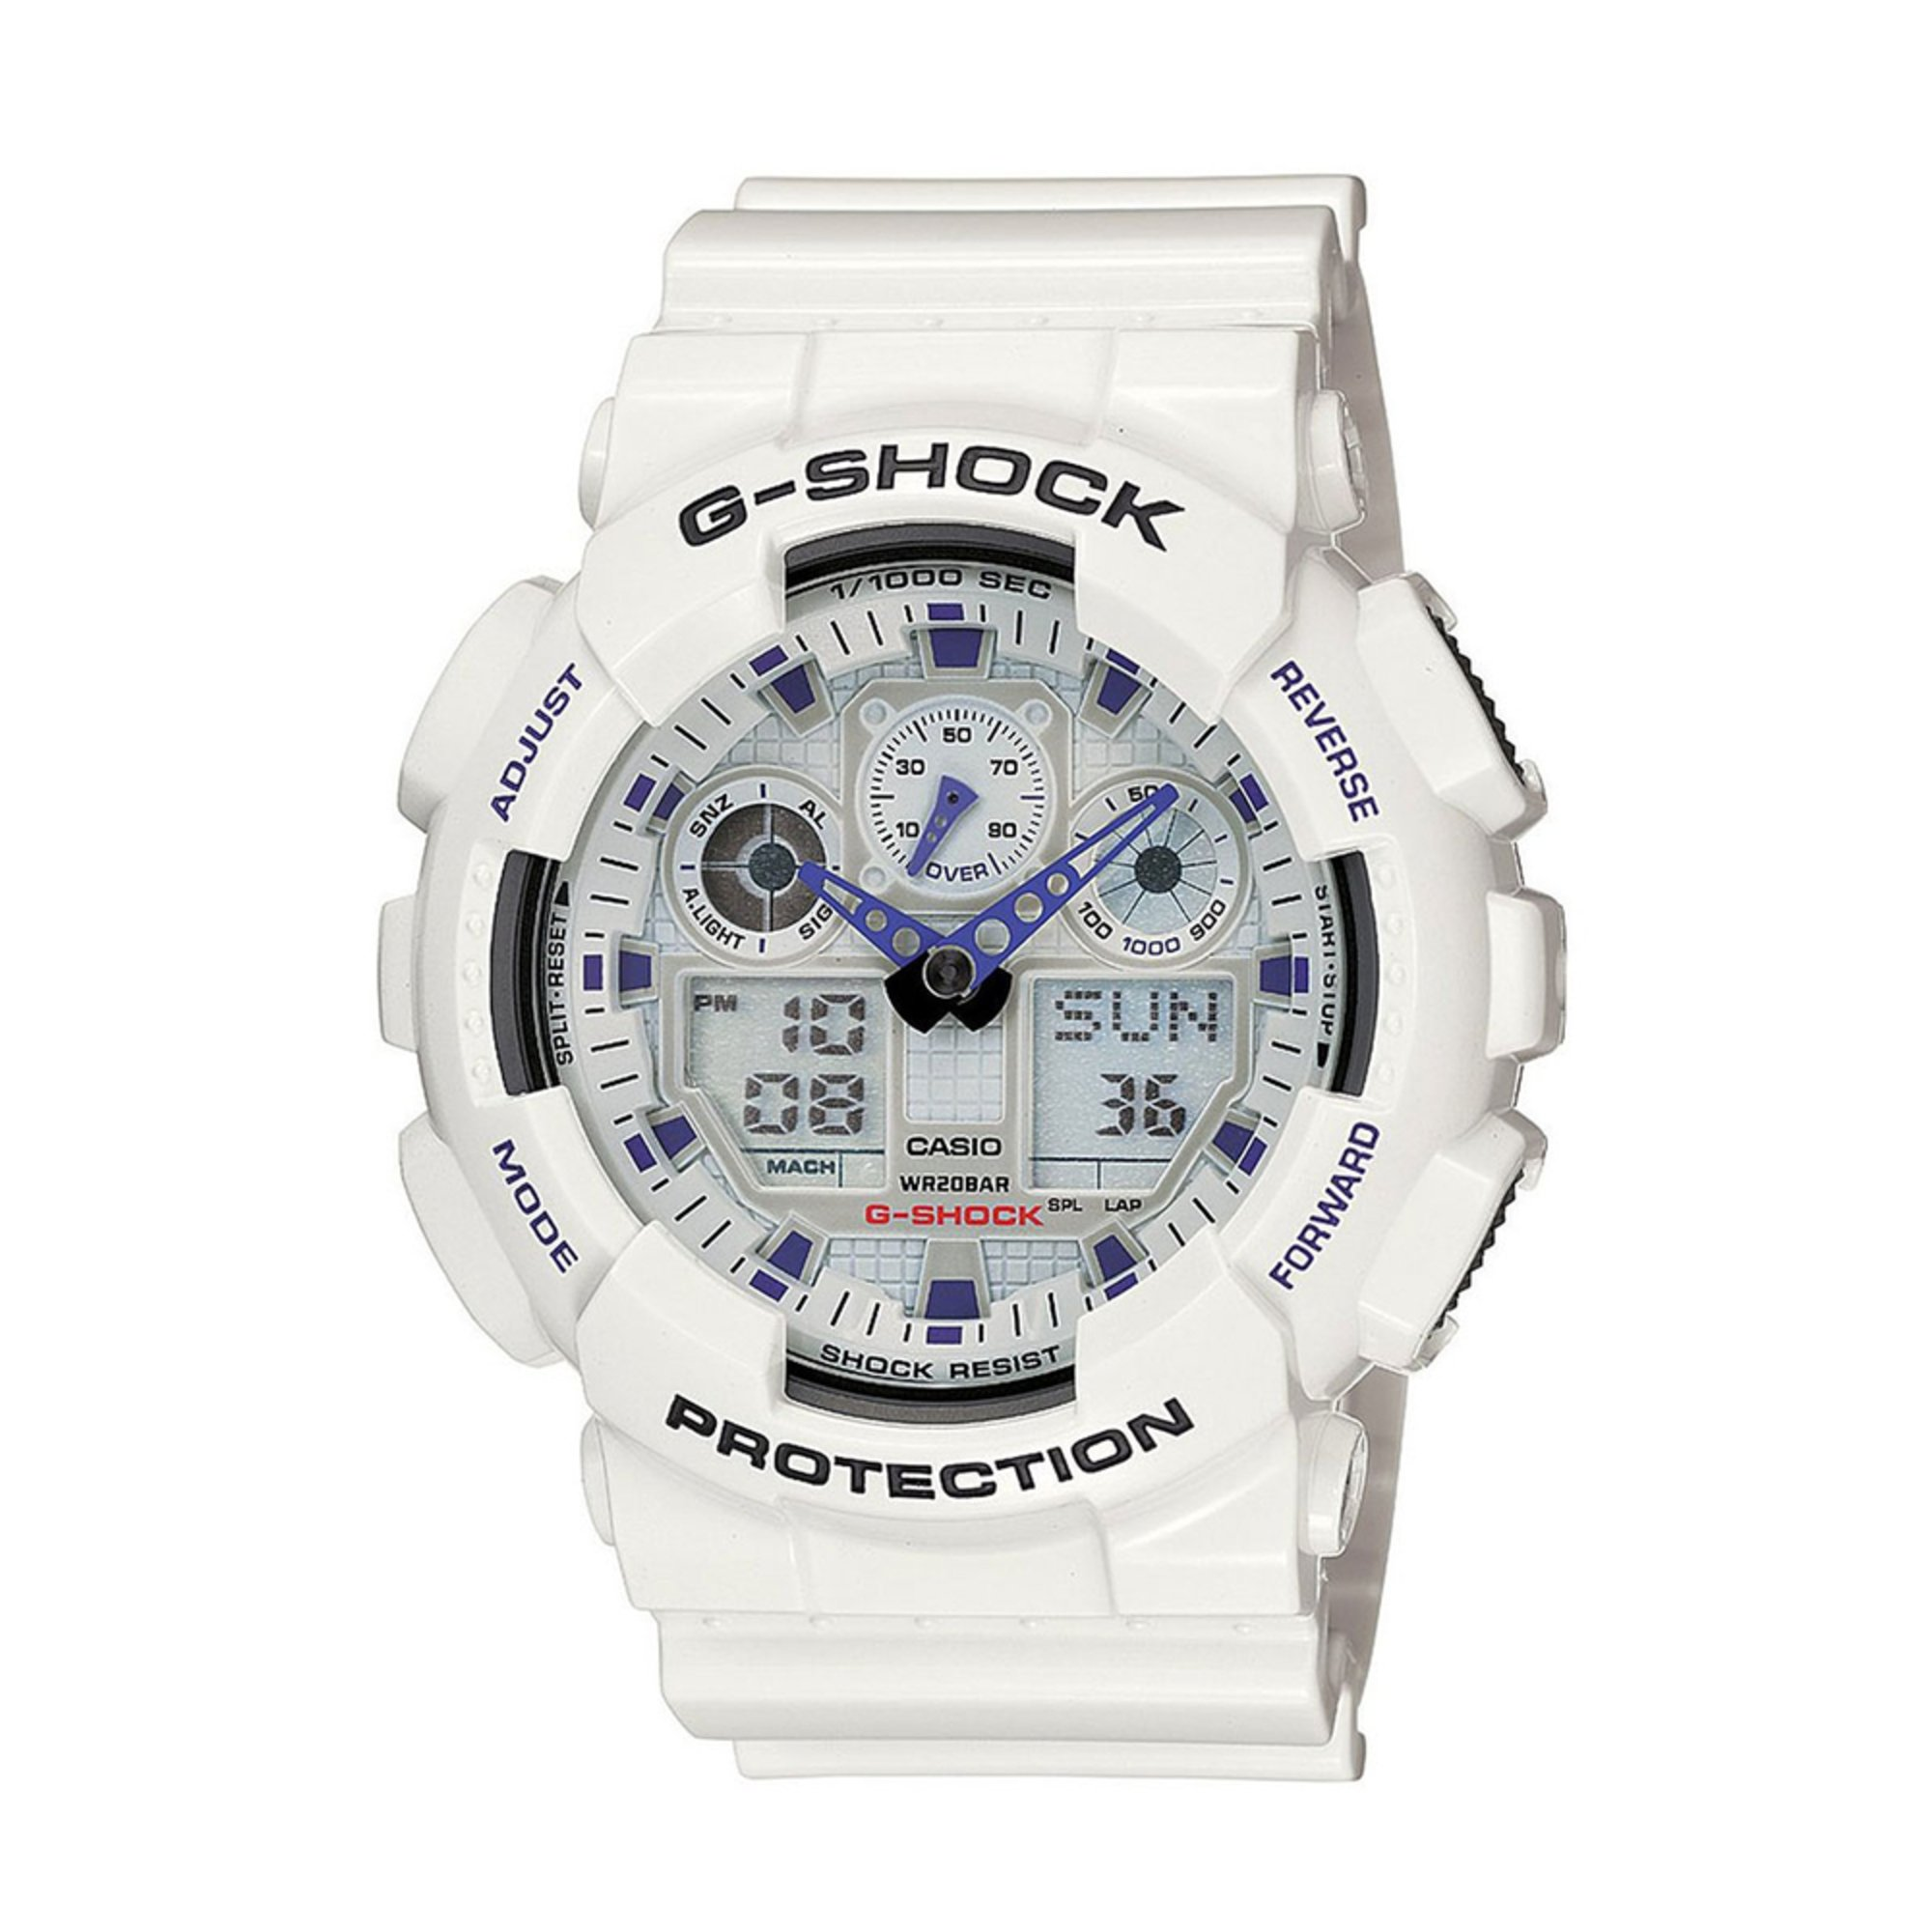 Casio Men S G Shock White And Blue Xl Analog Digital Watch